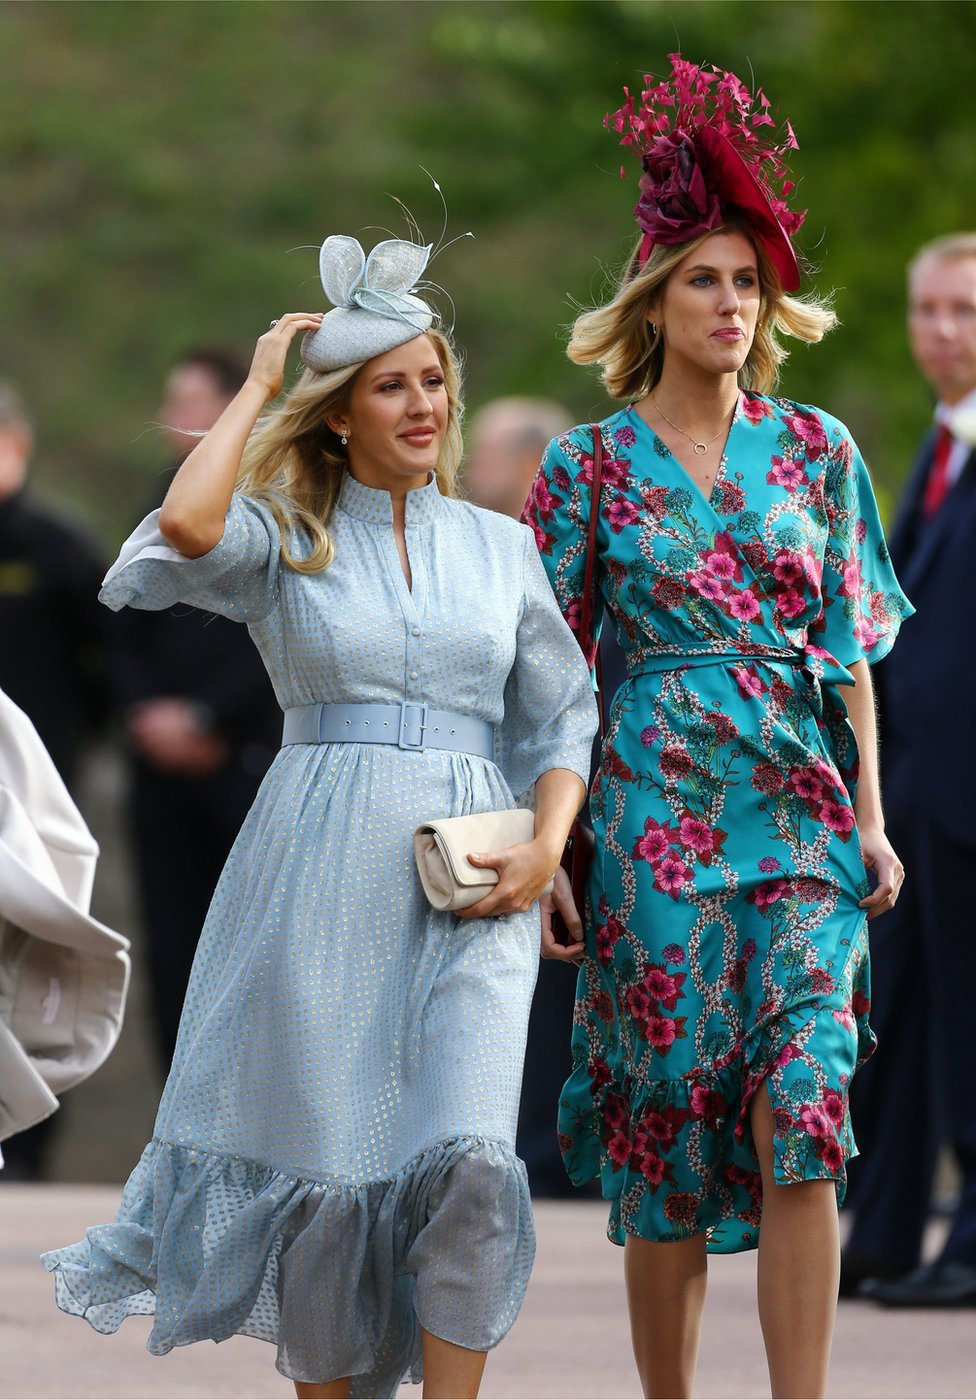 Ellie Goulding and a guest arrive at the royal wedding